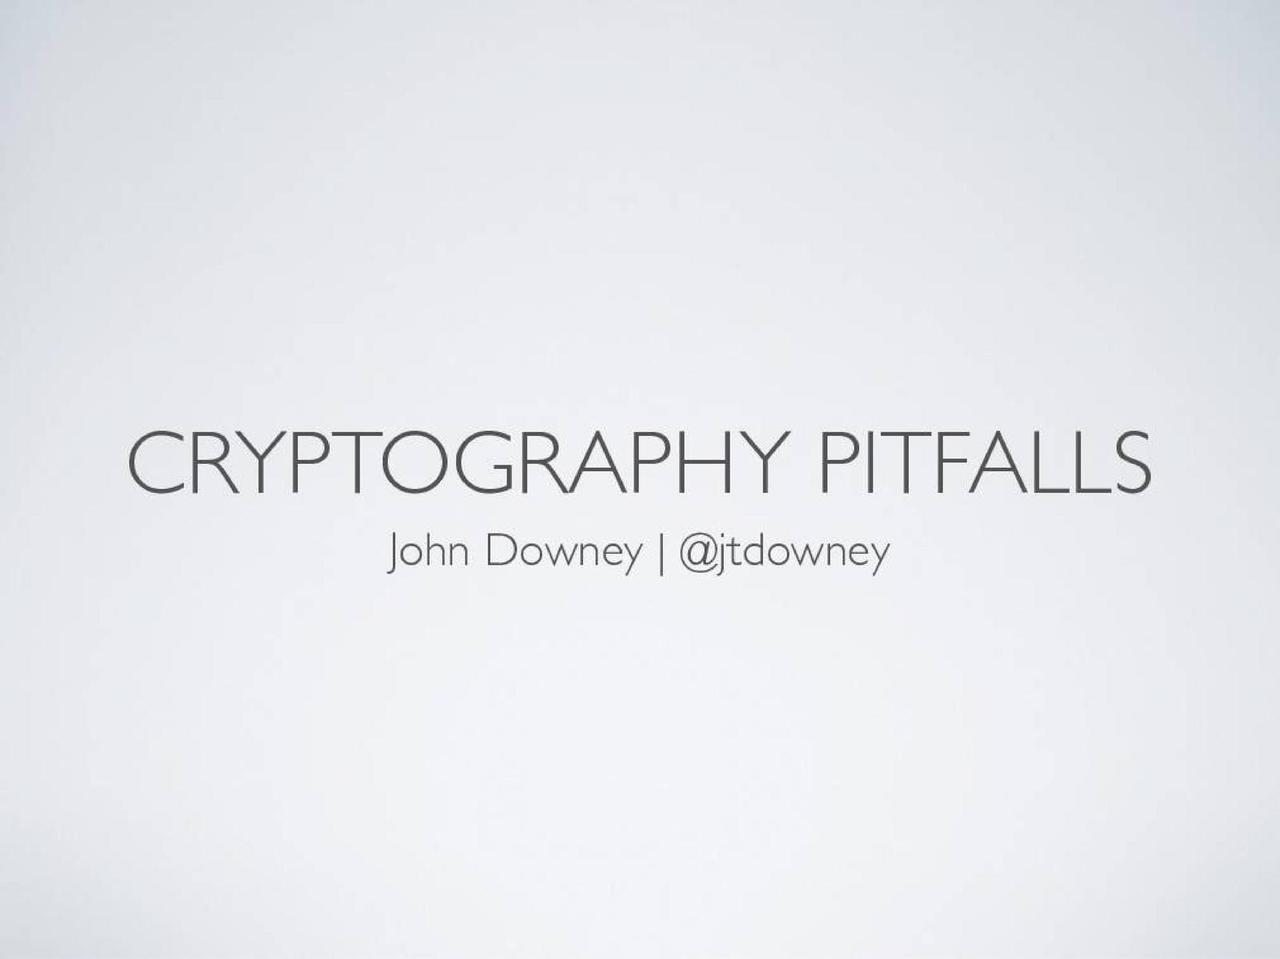 Cryptography Pitfalls at OSCON 2013